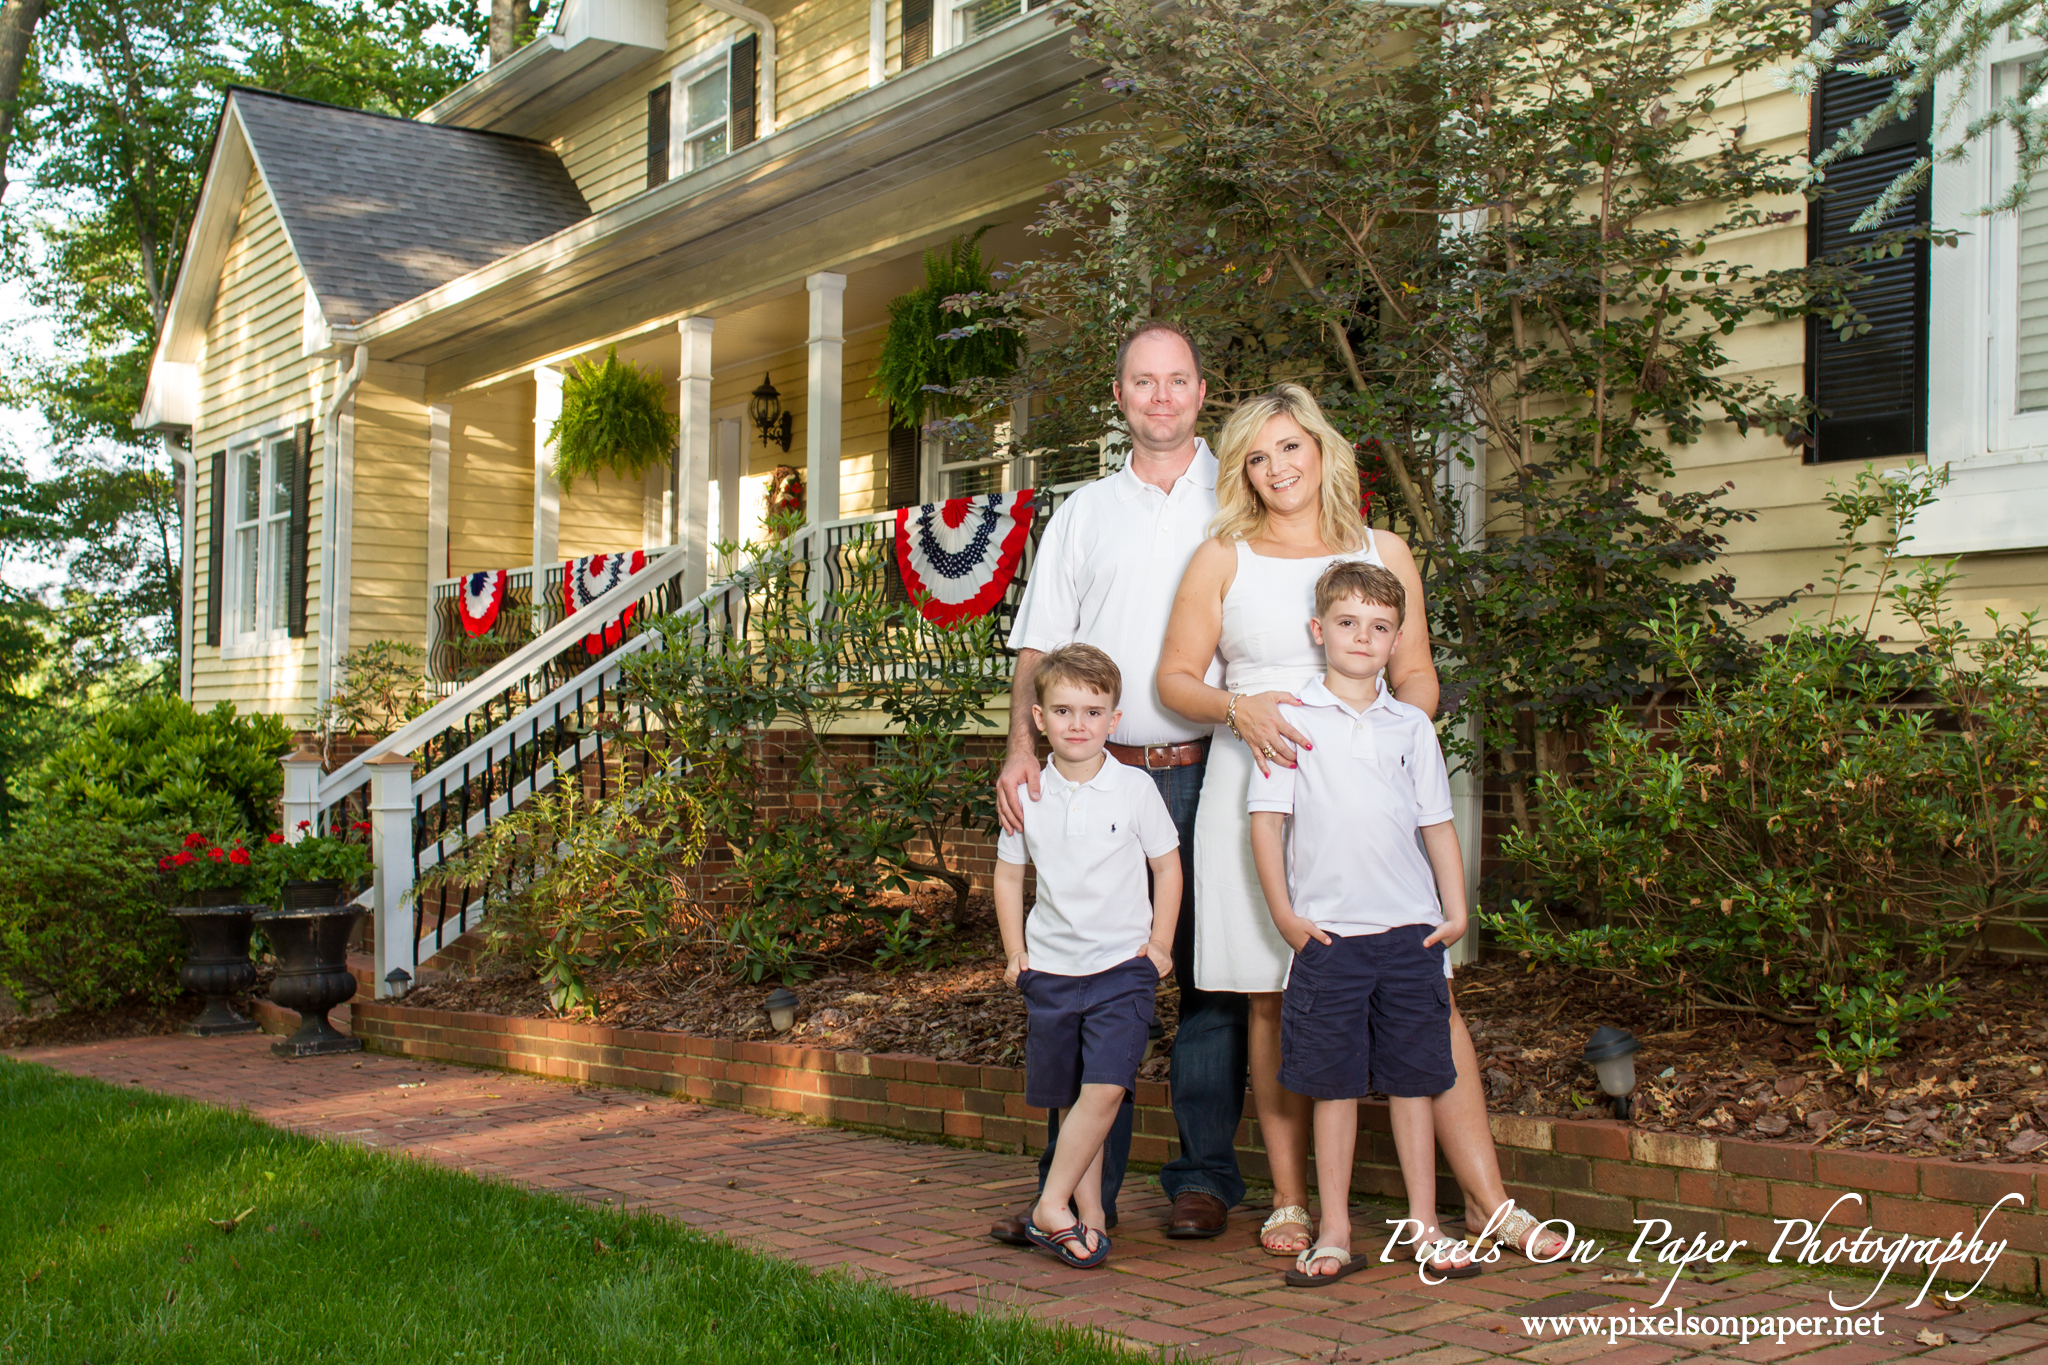 Wilkesbor NC photographers outdoor family portrait photos by Pixels On Paper photo